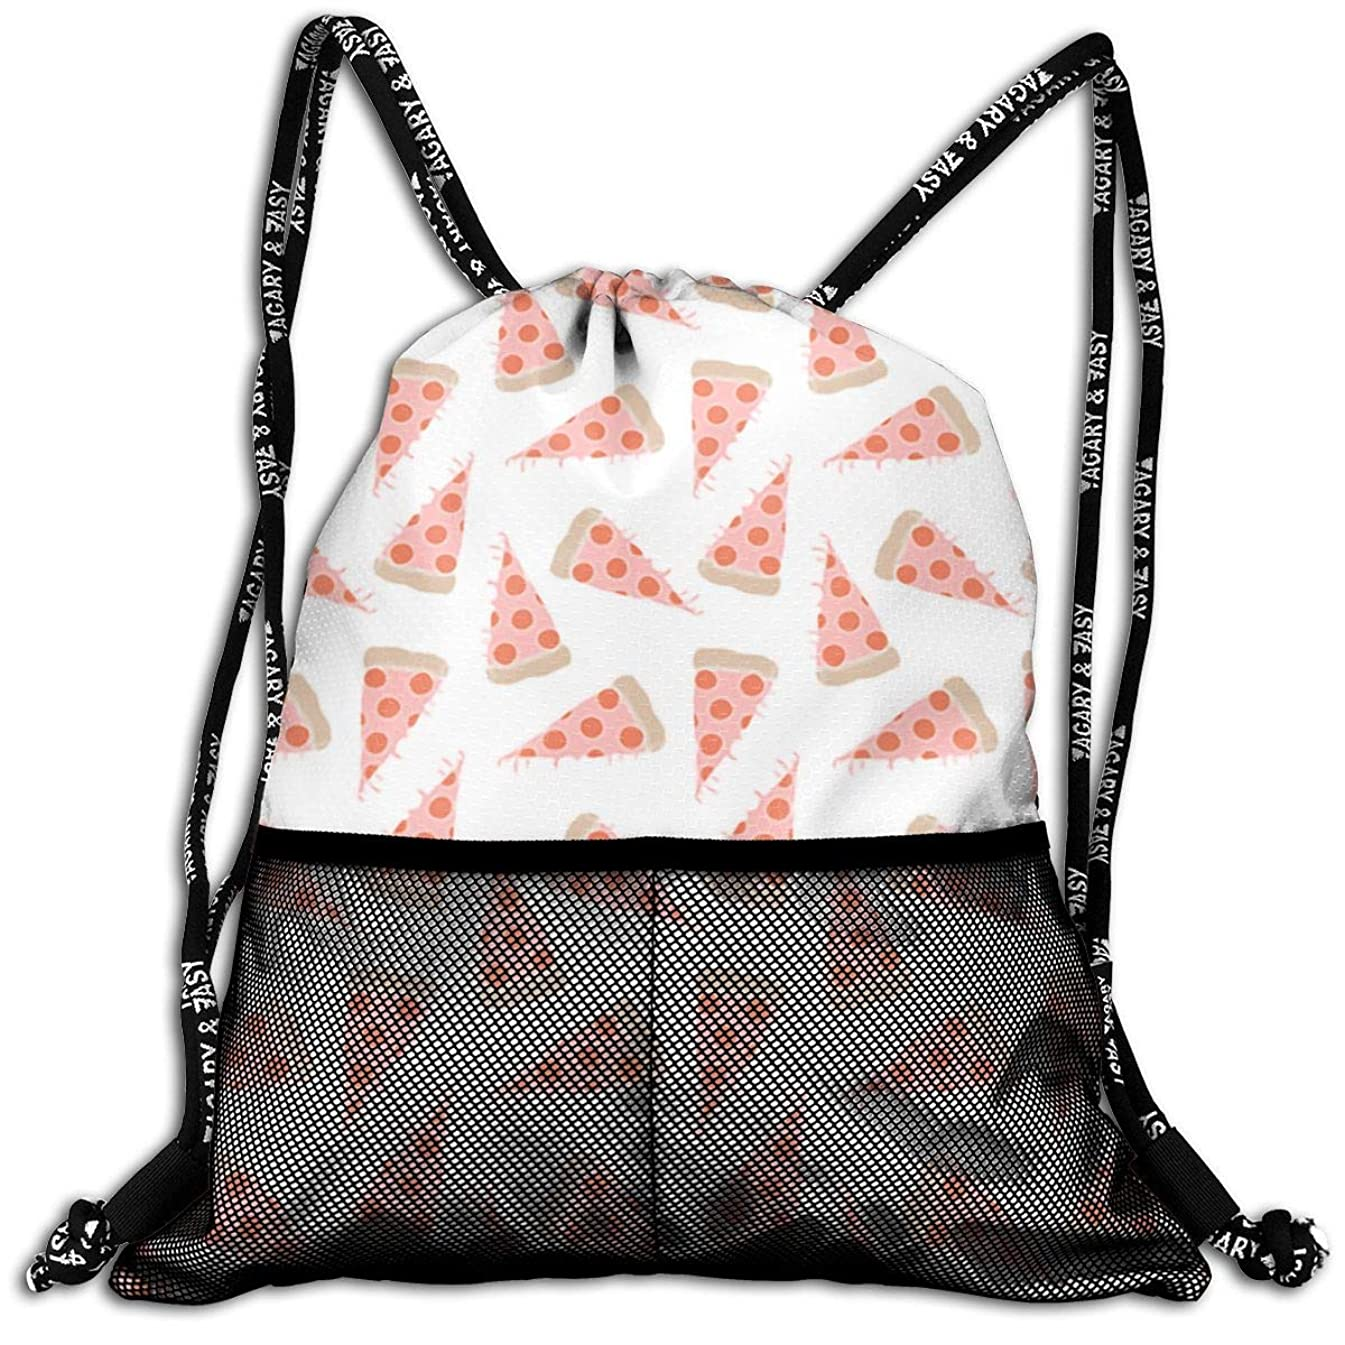 Men & Women Pizza Drawstring Bag Casual Team Training Gymsack For Gym Sports Travel